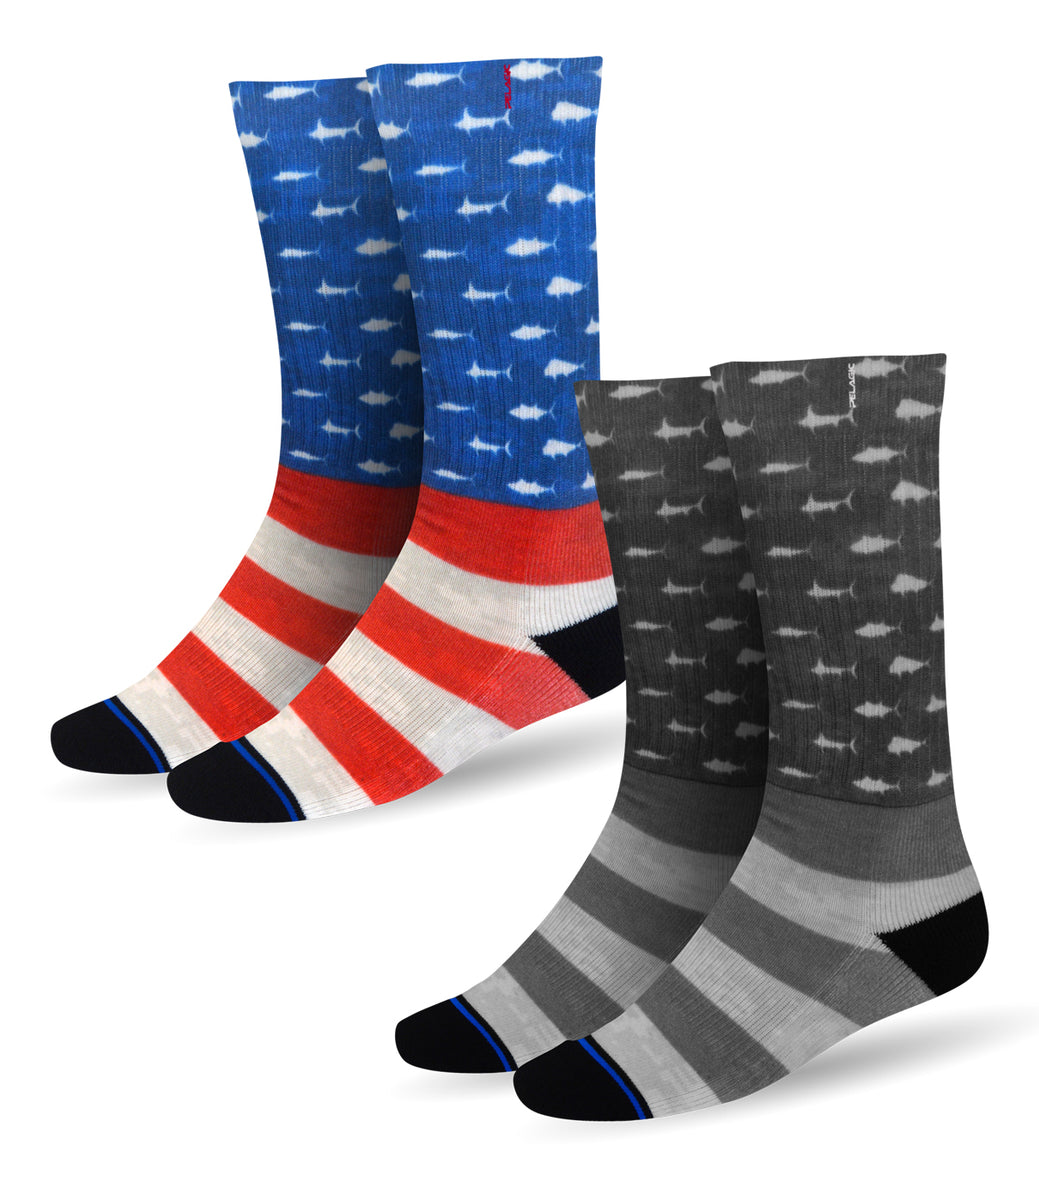 Proform Socks 2-Pack Americamo Big Image - 1